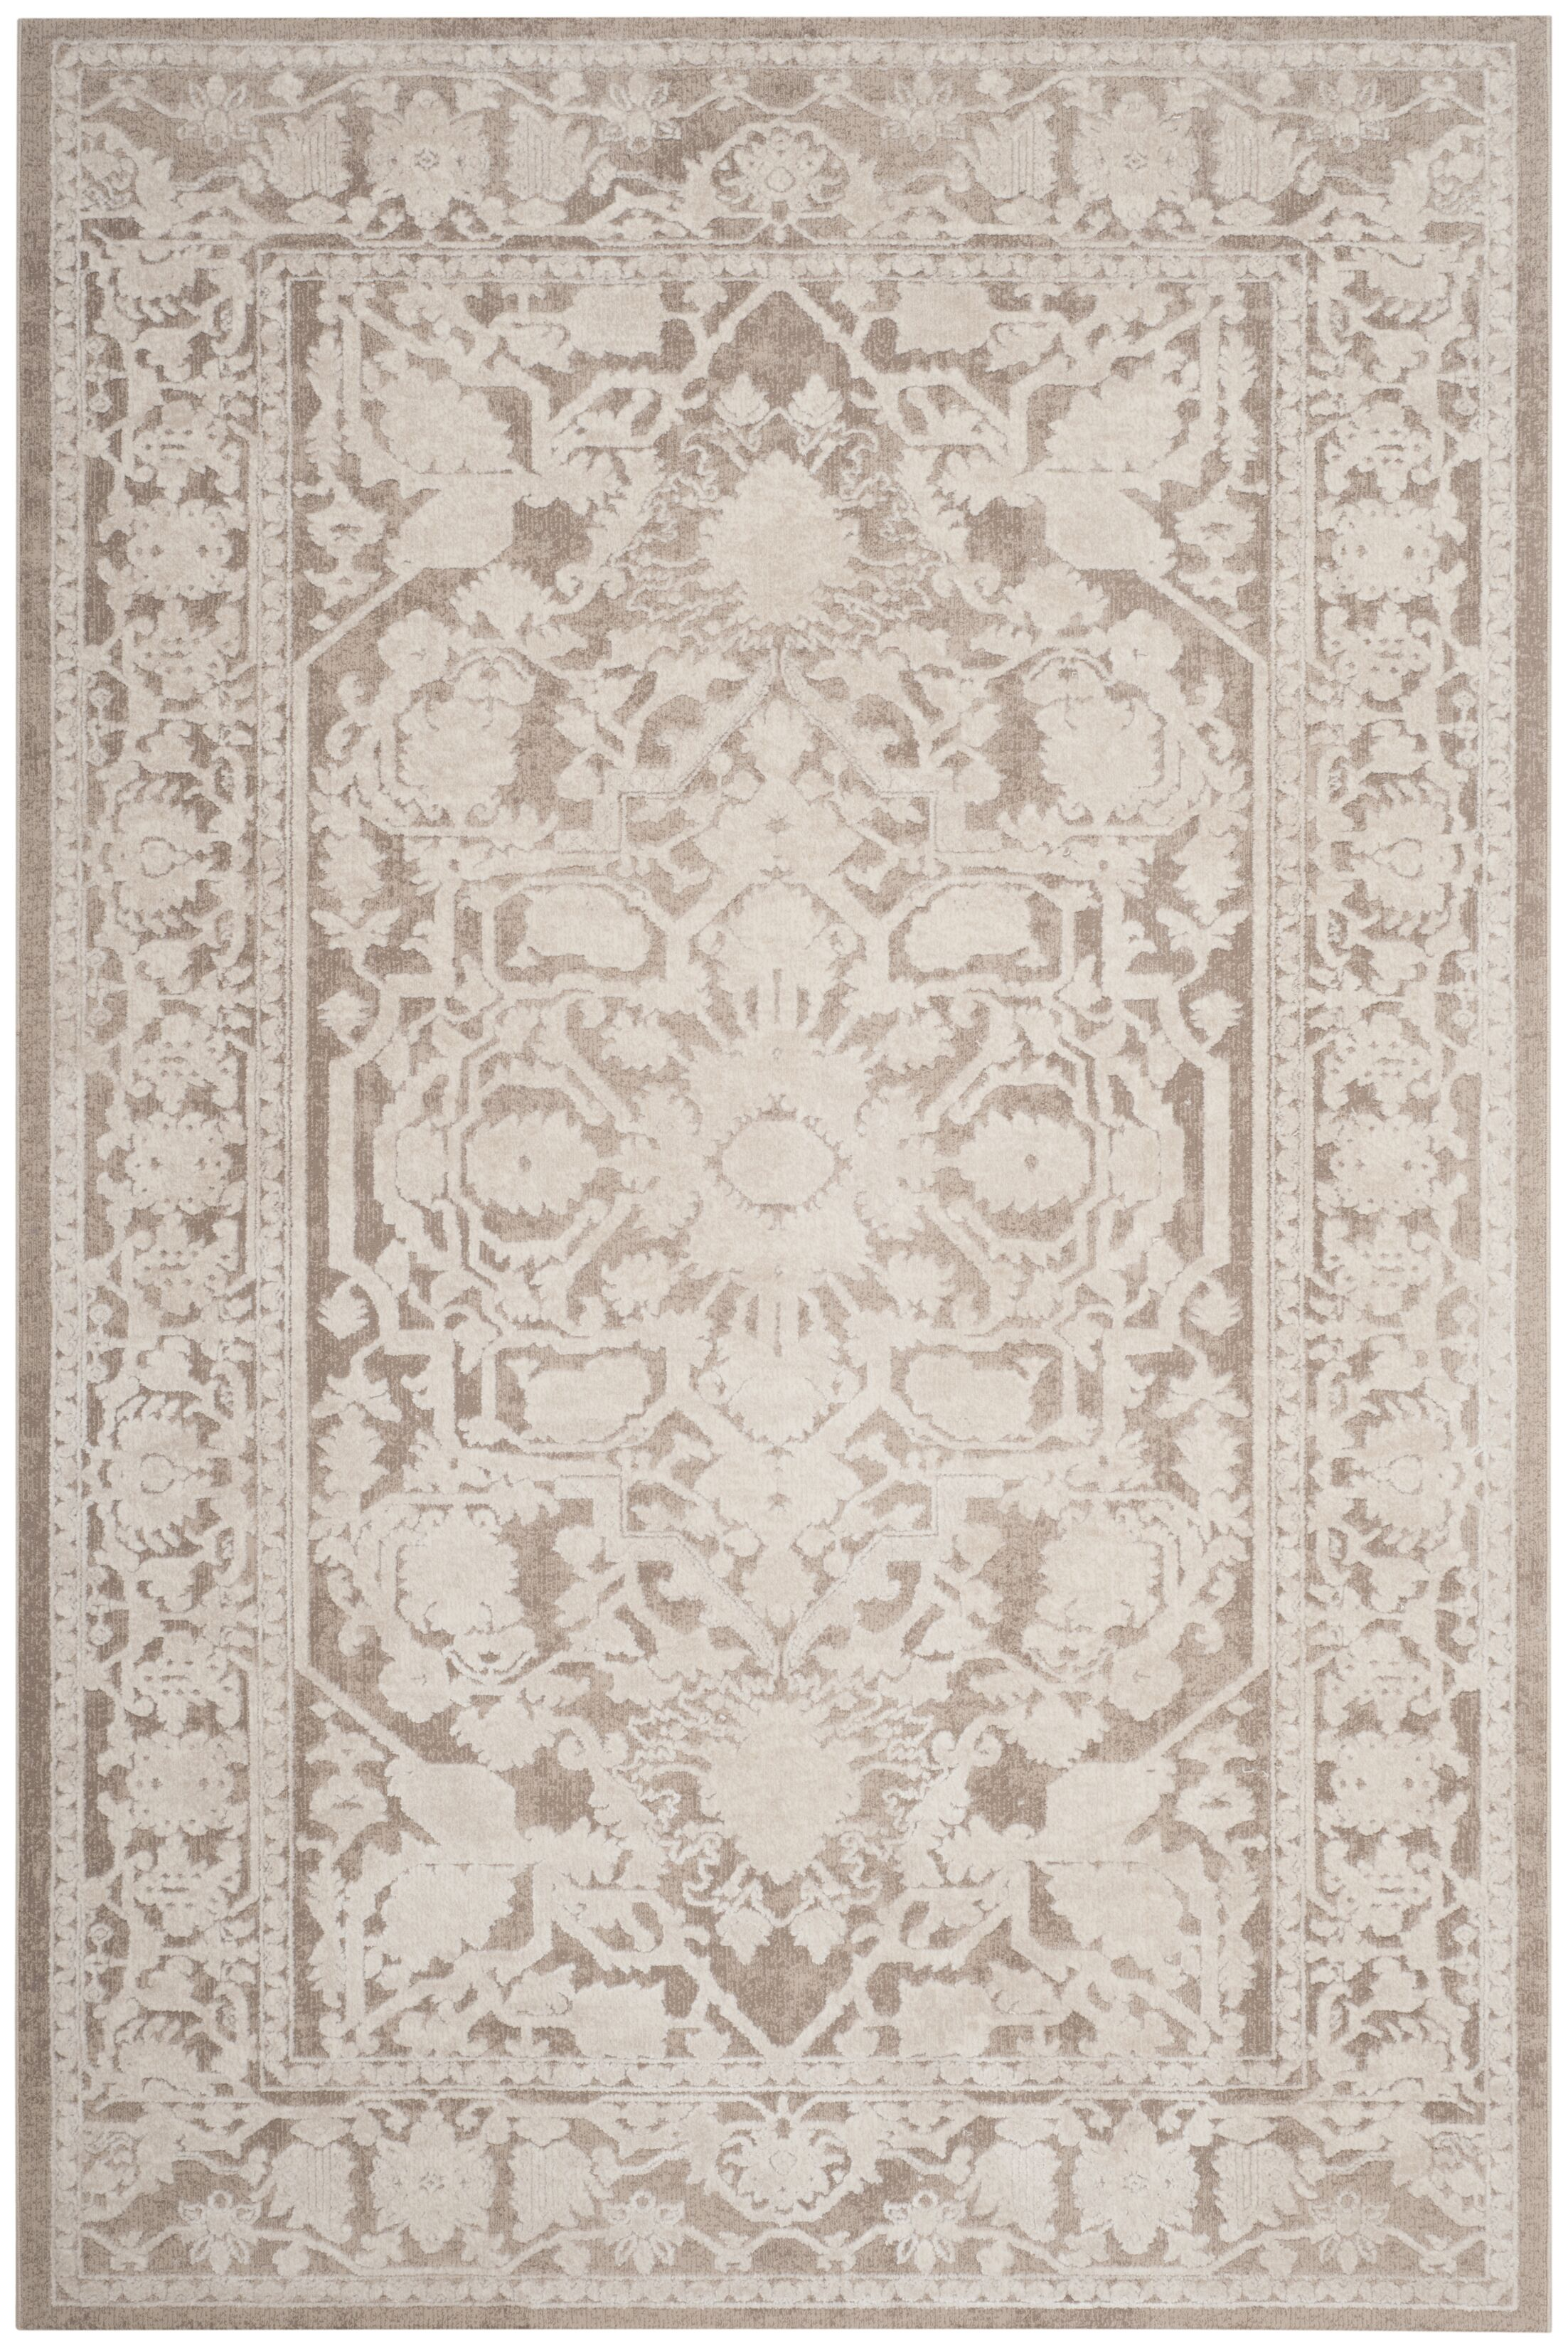 Pellot Dark Beige/Cream Area Rug Rug Size: Rectangle 8' x 10'